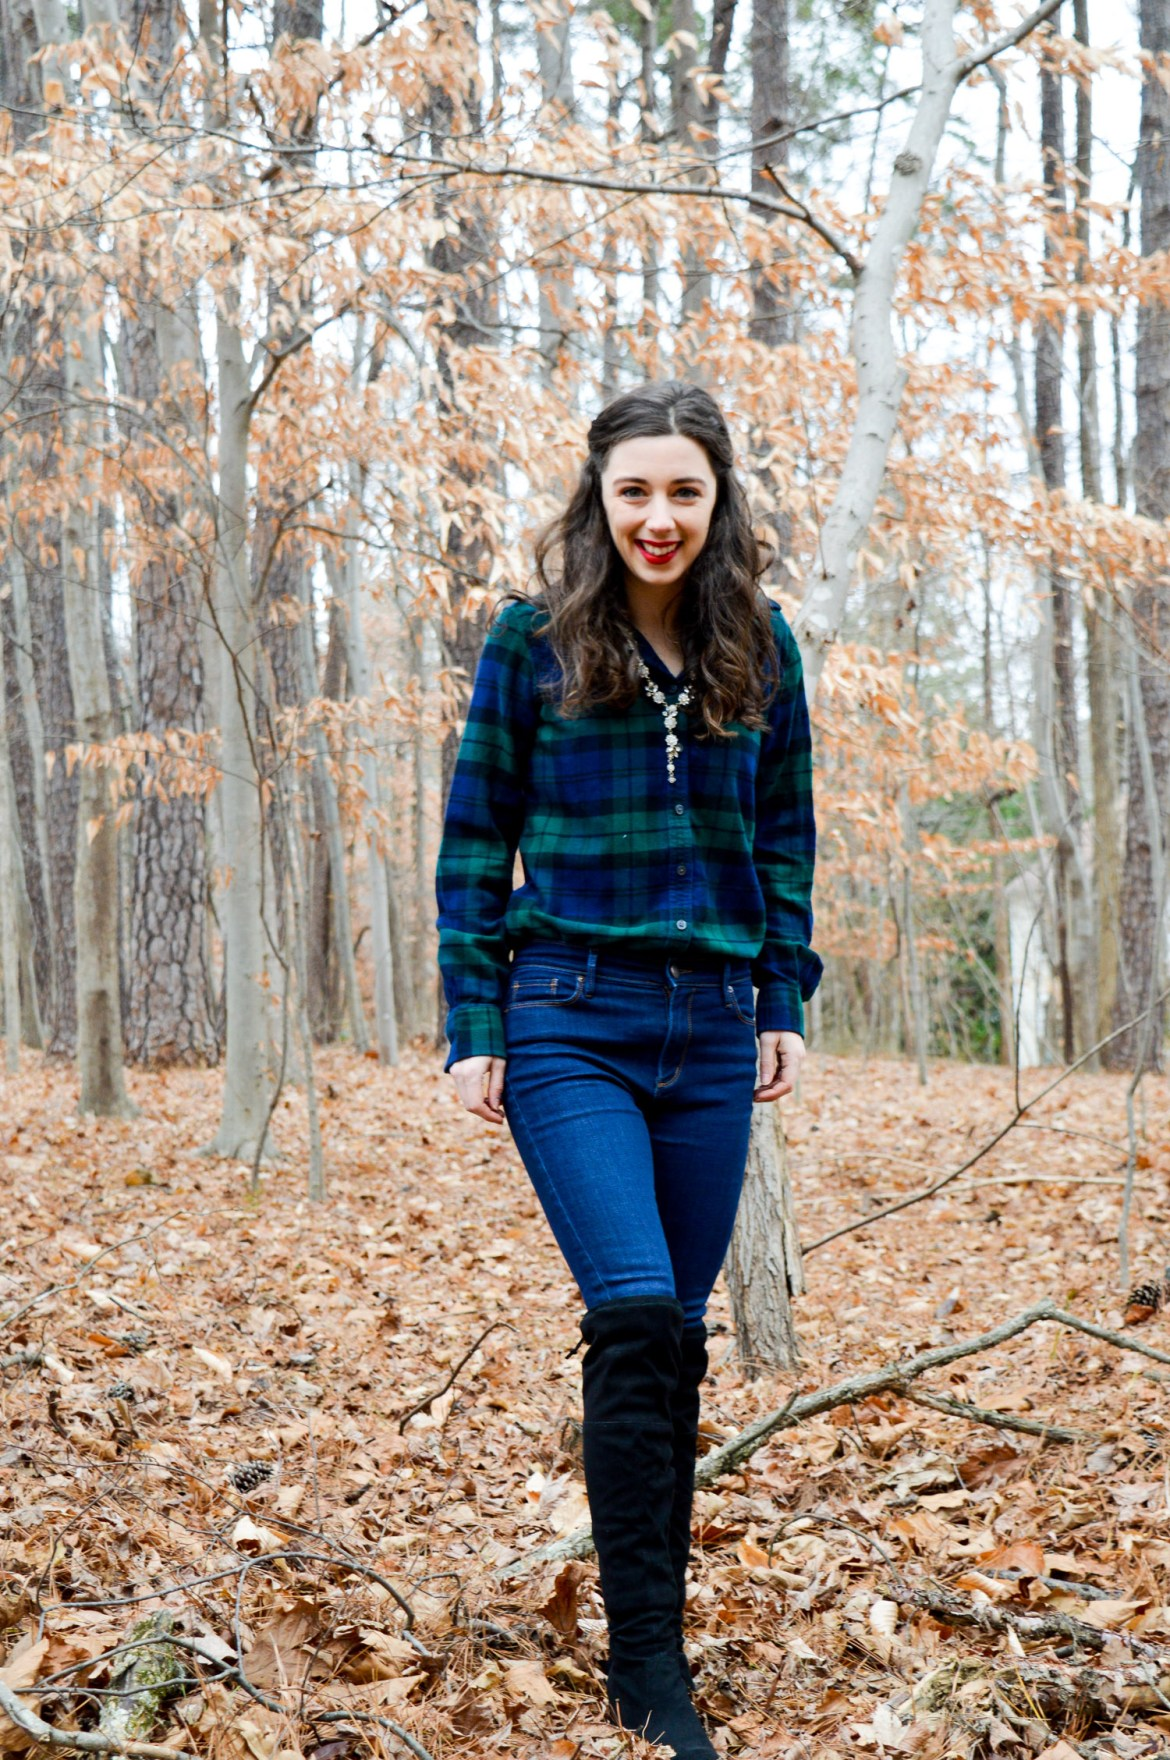 Plaid flannel top + Jeans + OTK boots